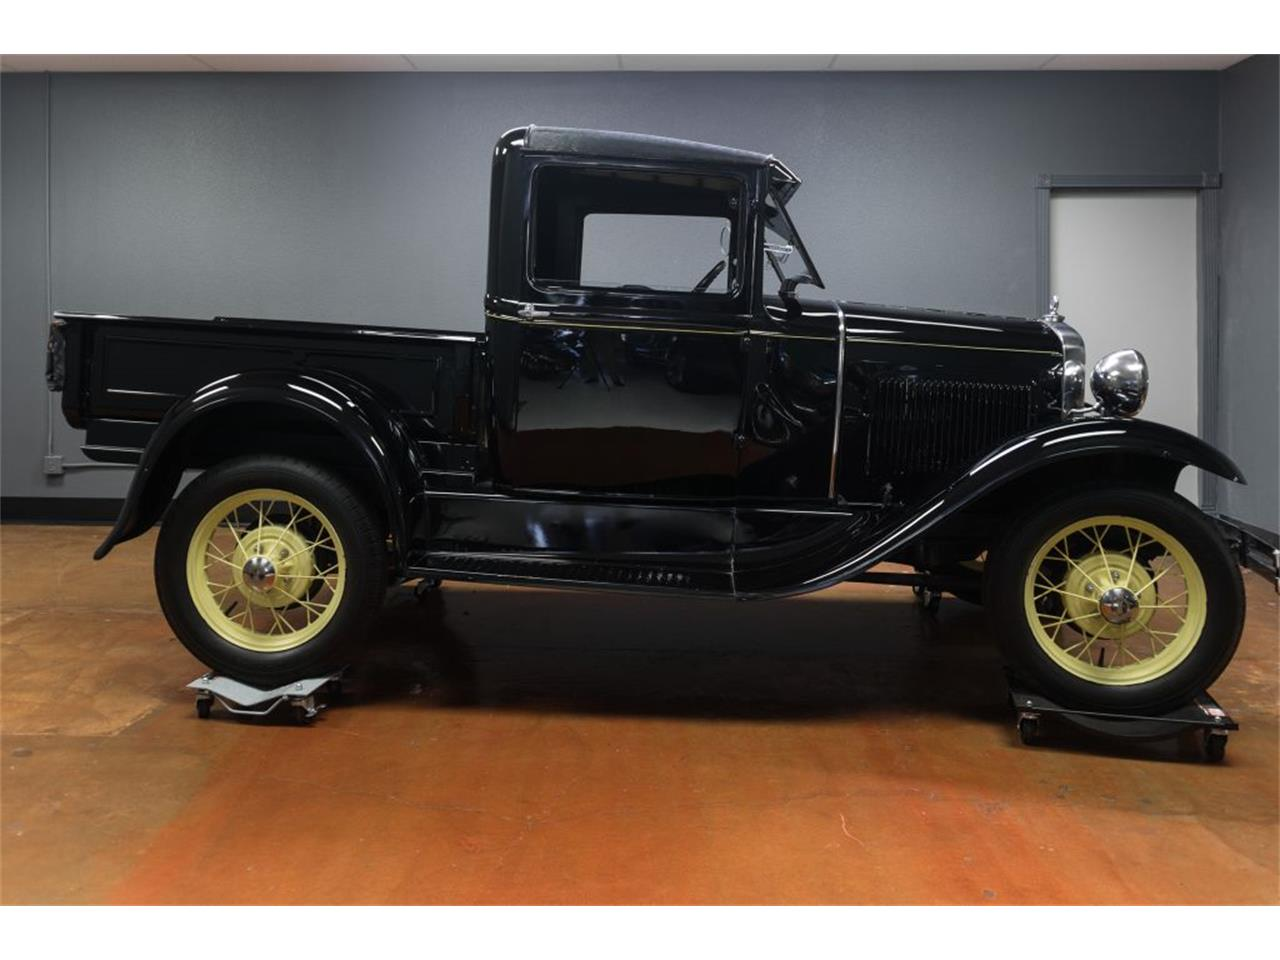 1930 Ford Model A For Sale In Temecula Ca Classiccarsbay Com